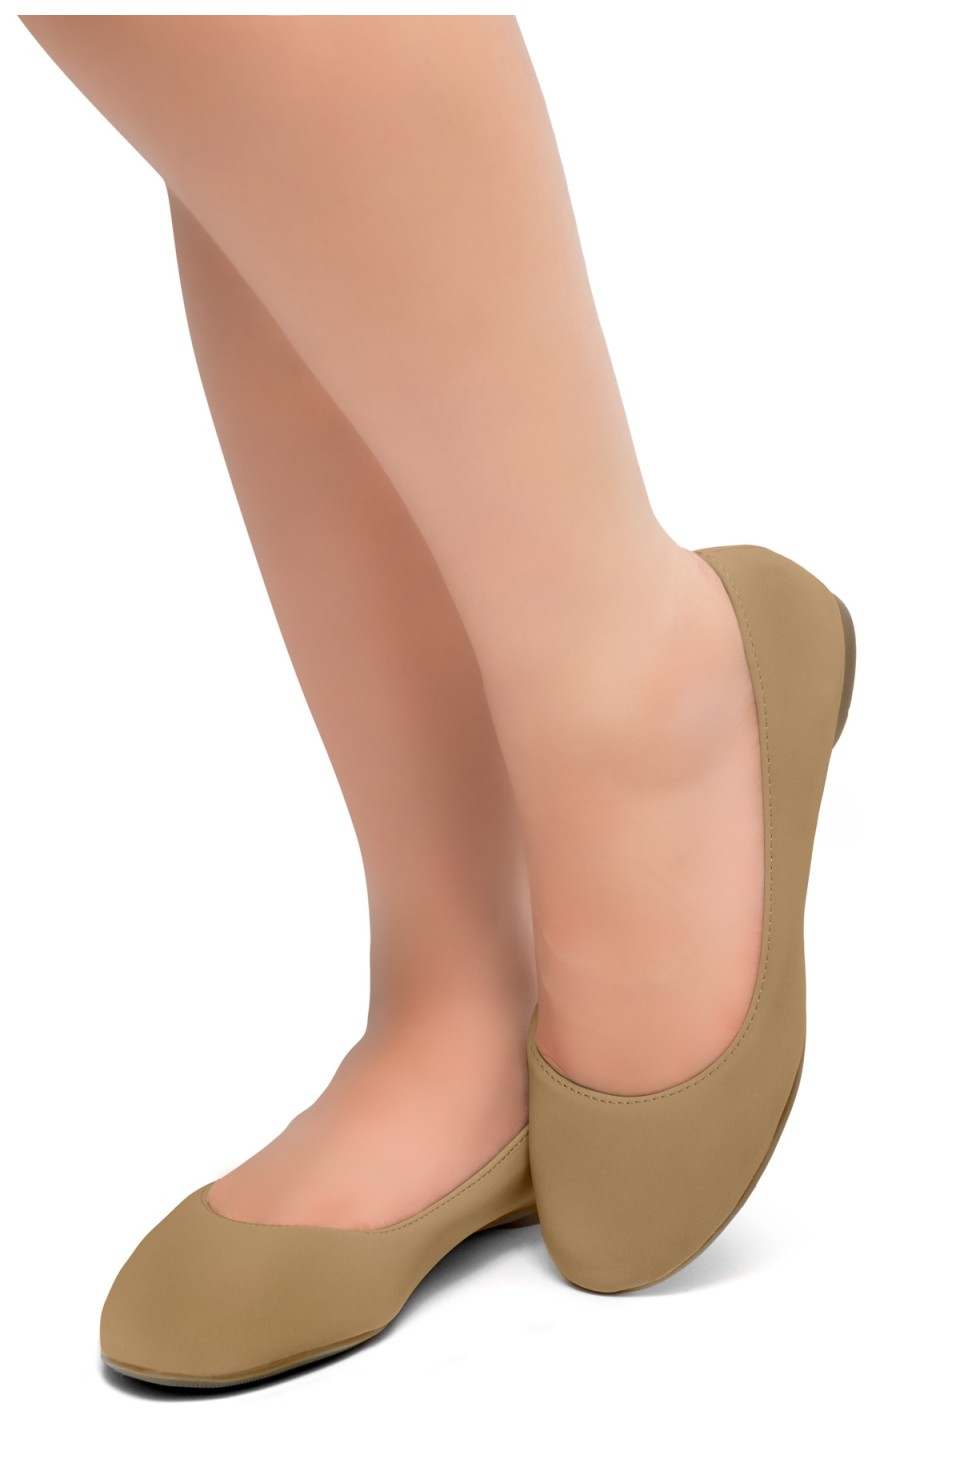 HerStyle Ever Memory -Almond Toe, No detail, Ballet Flat (Tan)